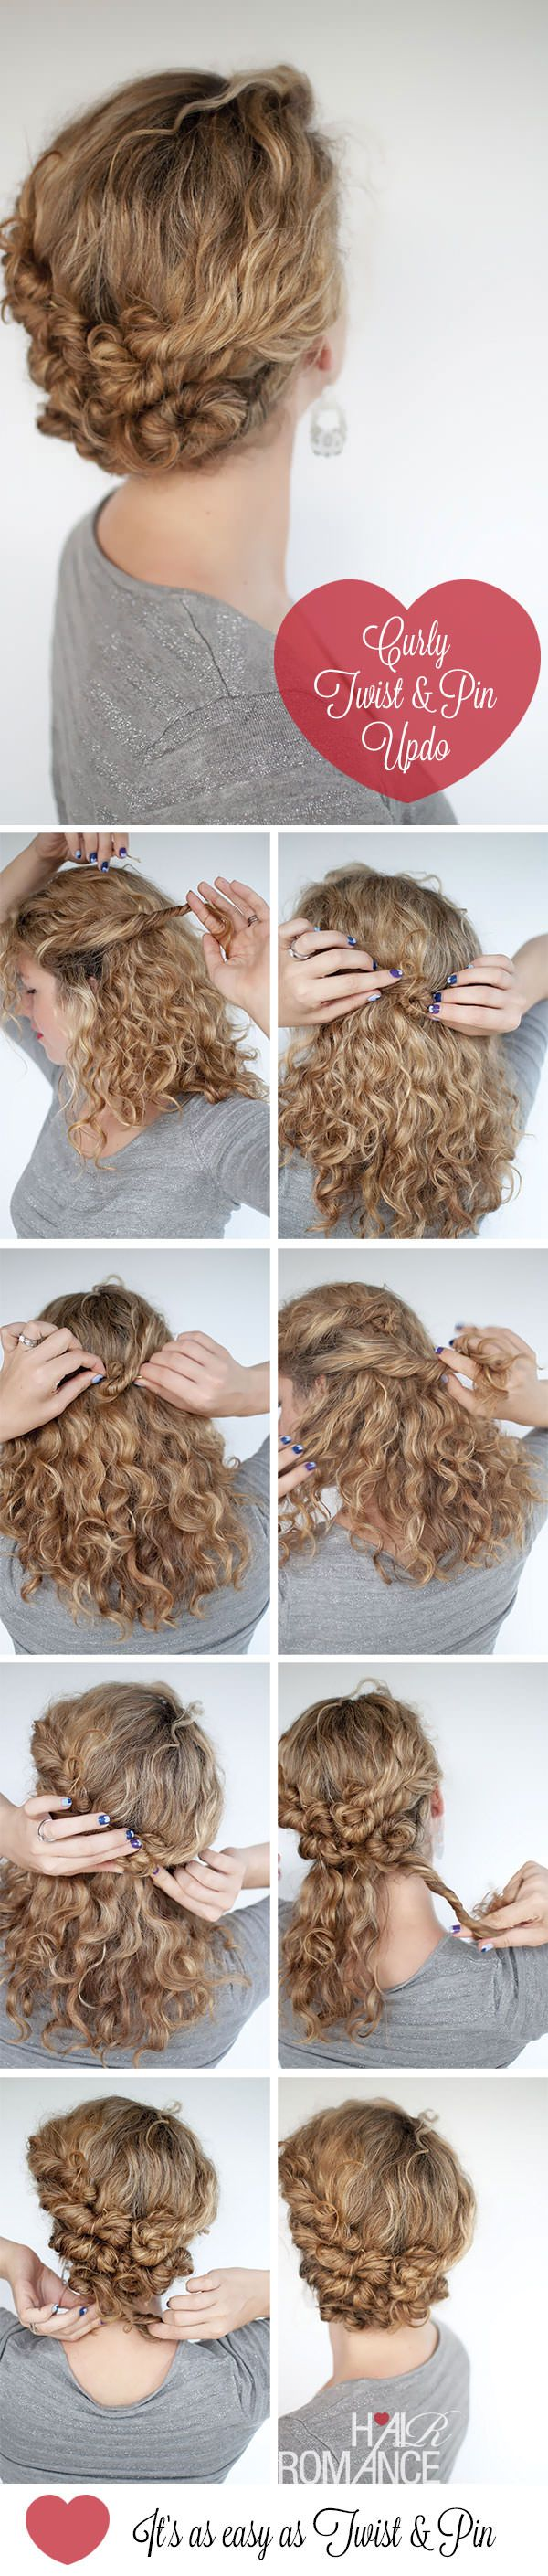 20 Simple Updos That Are Cute Easy For Beginners Hair Styles Curly Hair Styles Naturally Hair Romance Curly